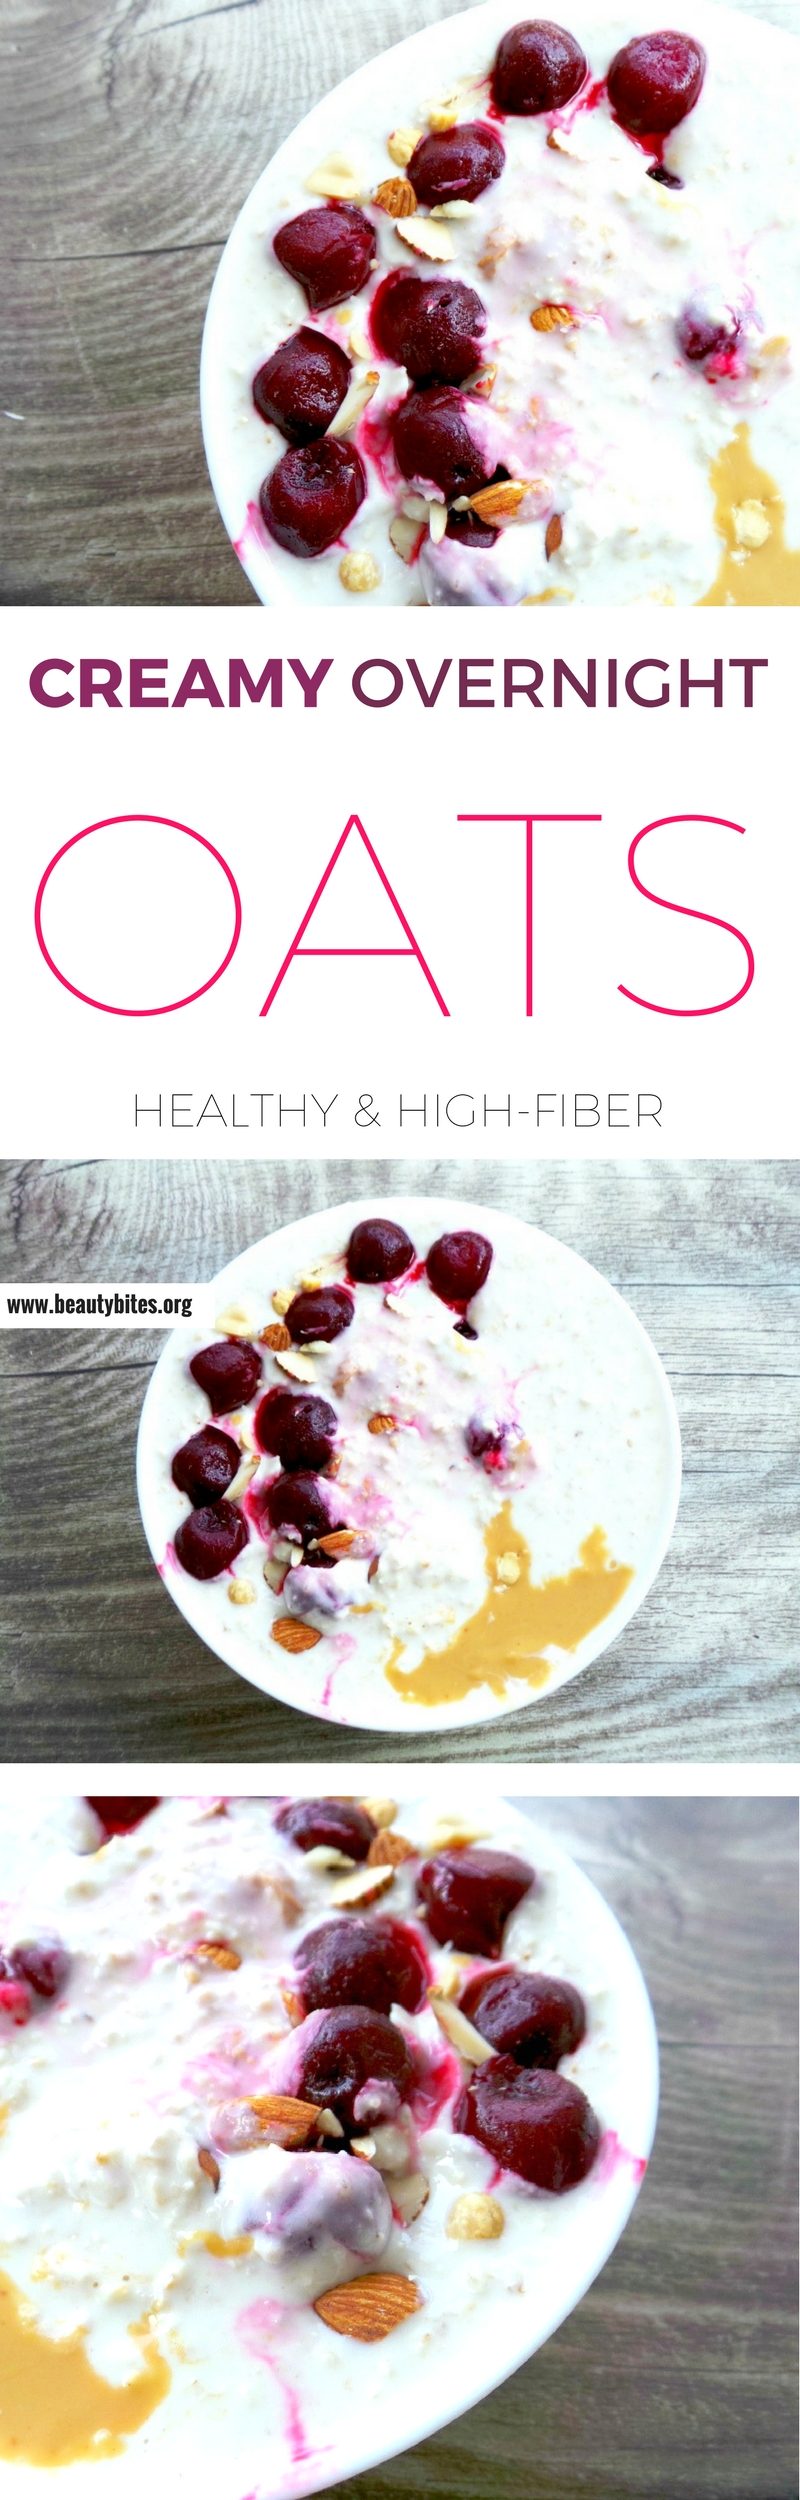 Healthy overnight oats recipe with peanut butter and frozen berries or cherries! Delicious easy healthy breakfast idea you need to try